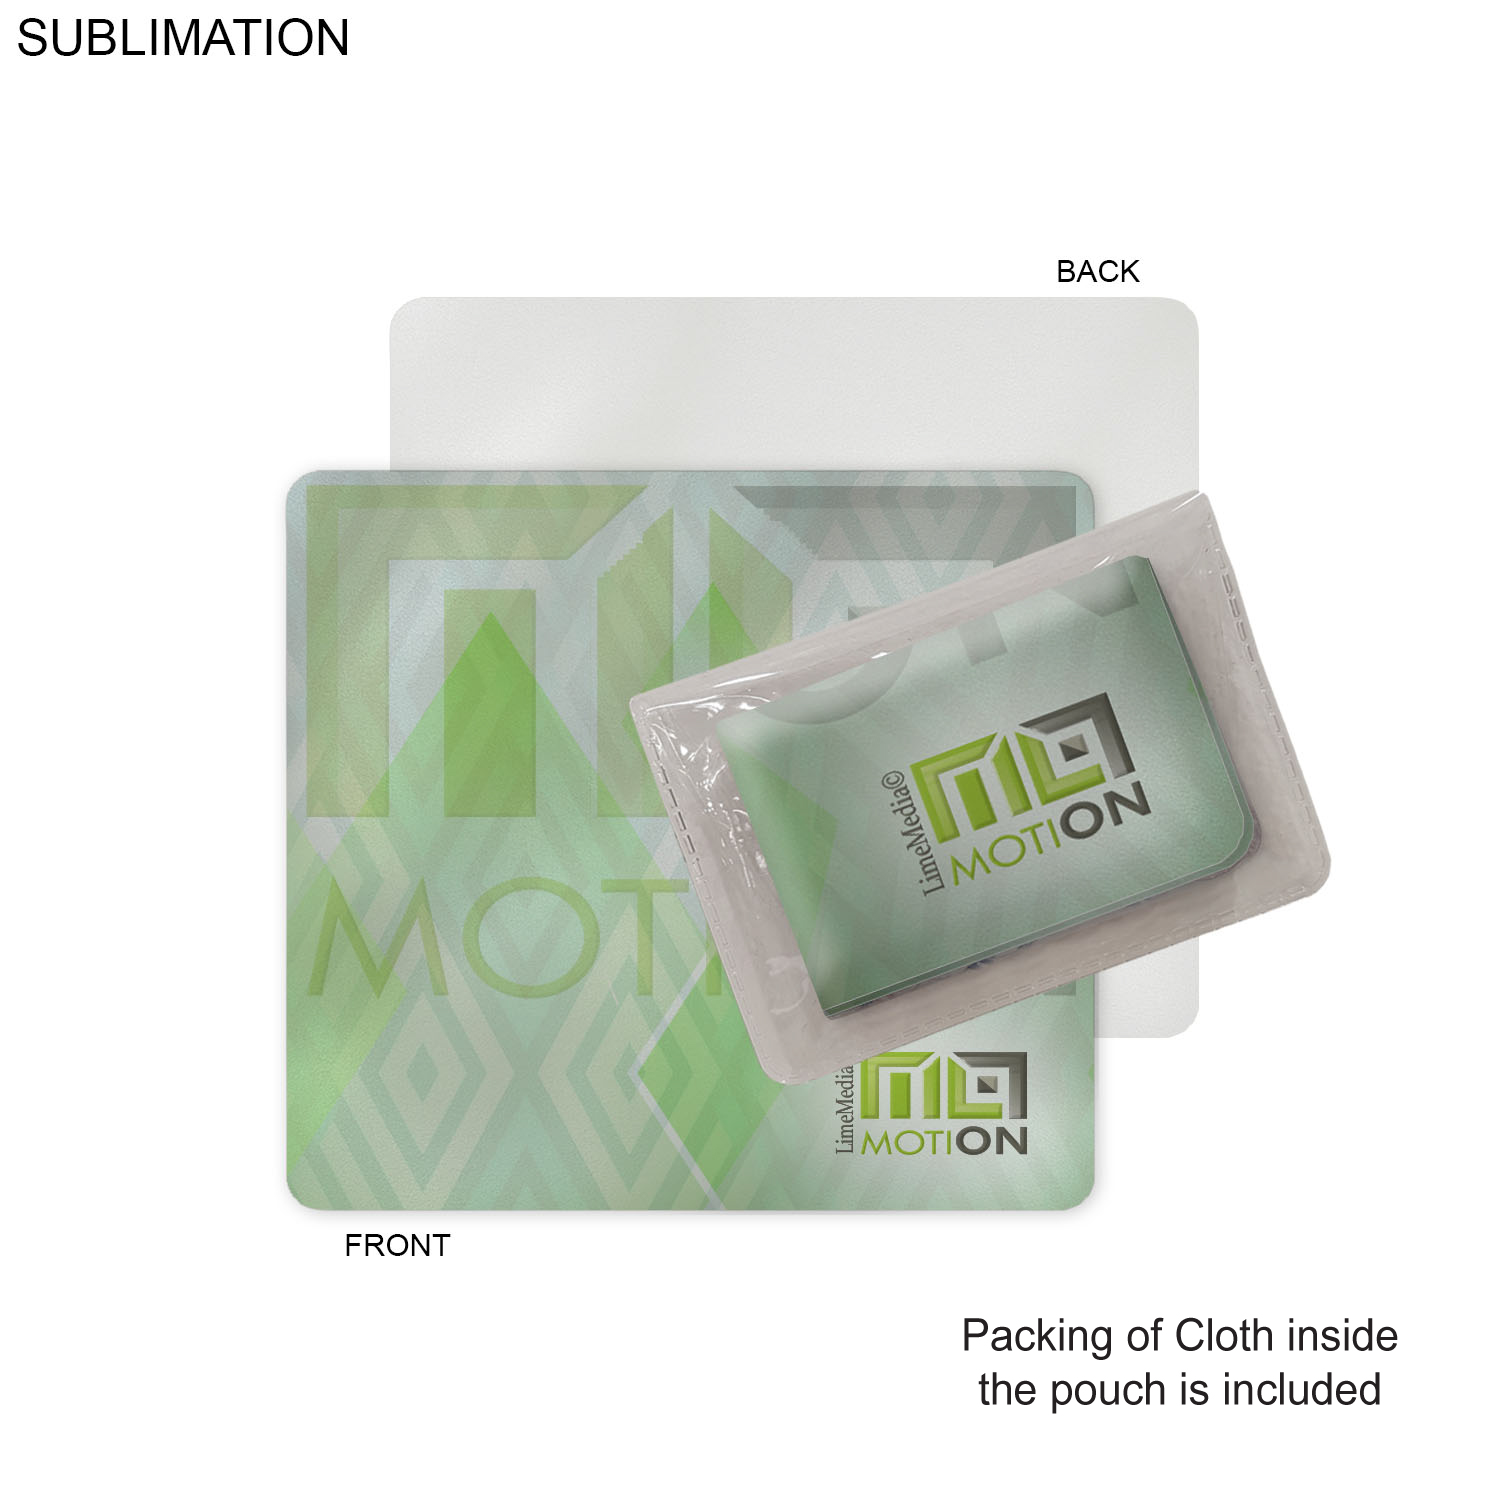 Sublimated 7.25x6.5 Cleaning Cloth with Vinyl Pouch, #SU550-2, Full Colour Imprint